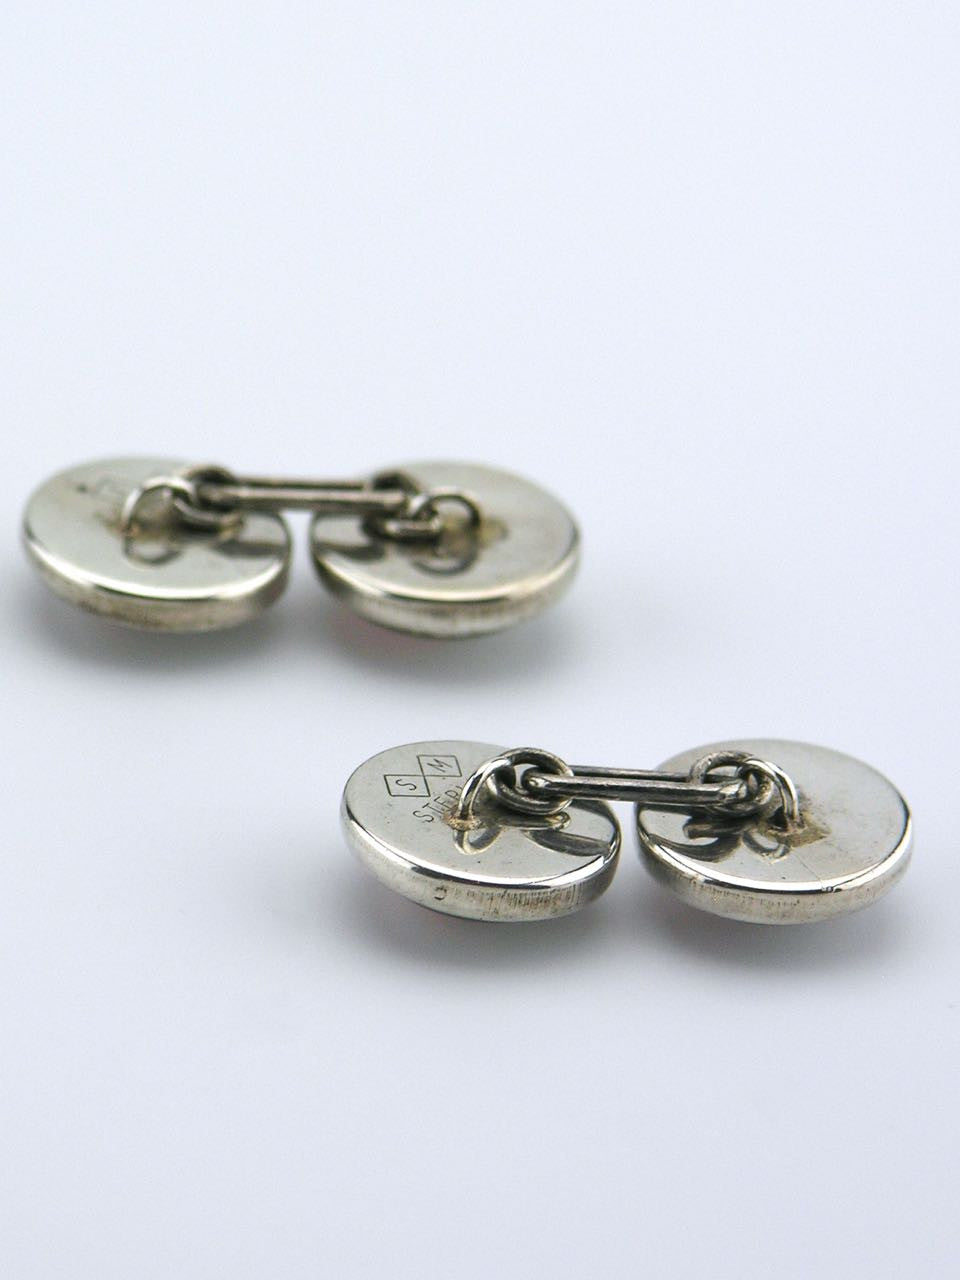 American silver mounted double fronted essex crystal golfer cufflinks